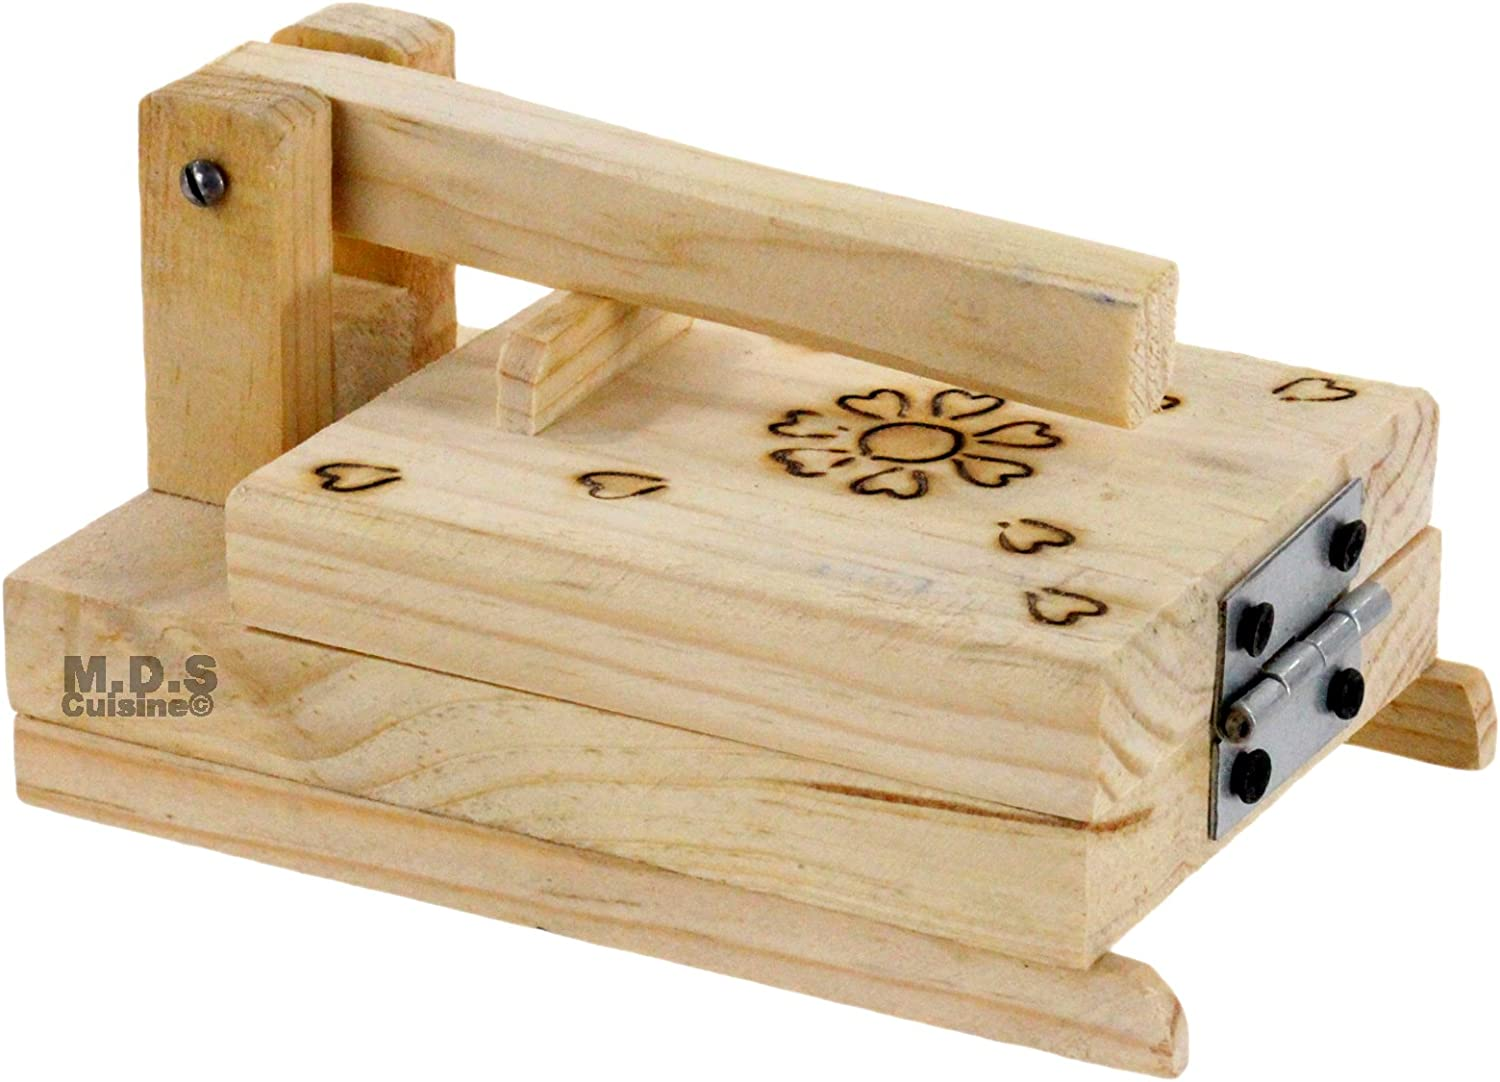 Tortilla Mail order cheap Press Mini Outlet sale feature 4.5 Authentic Wood Inch Traditional